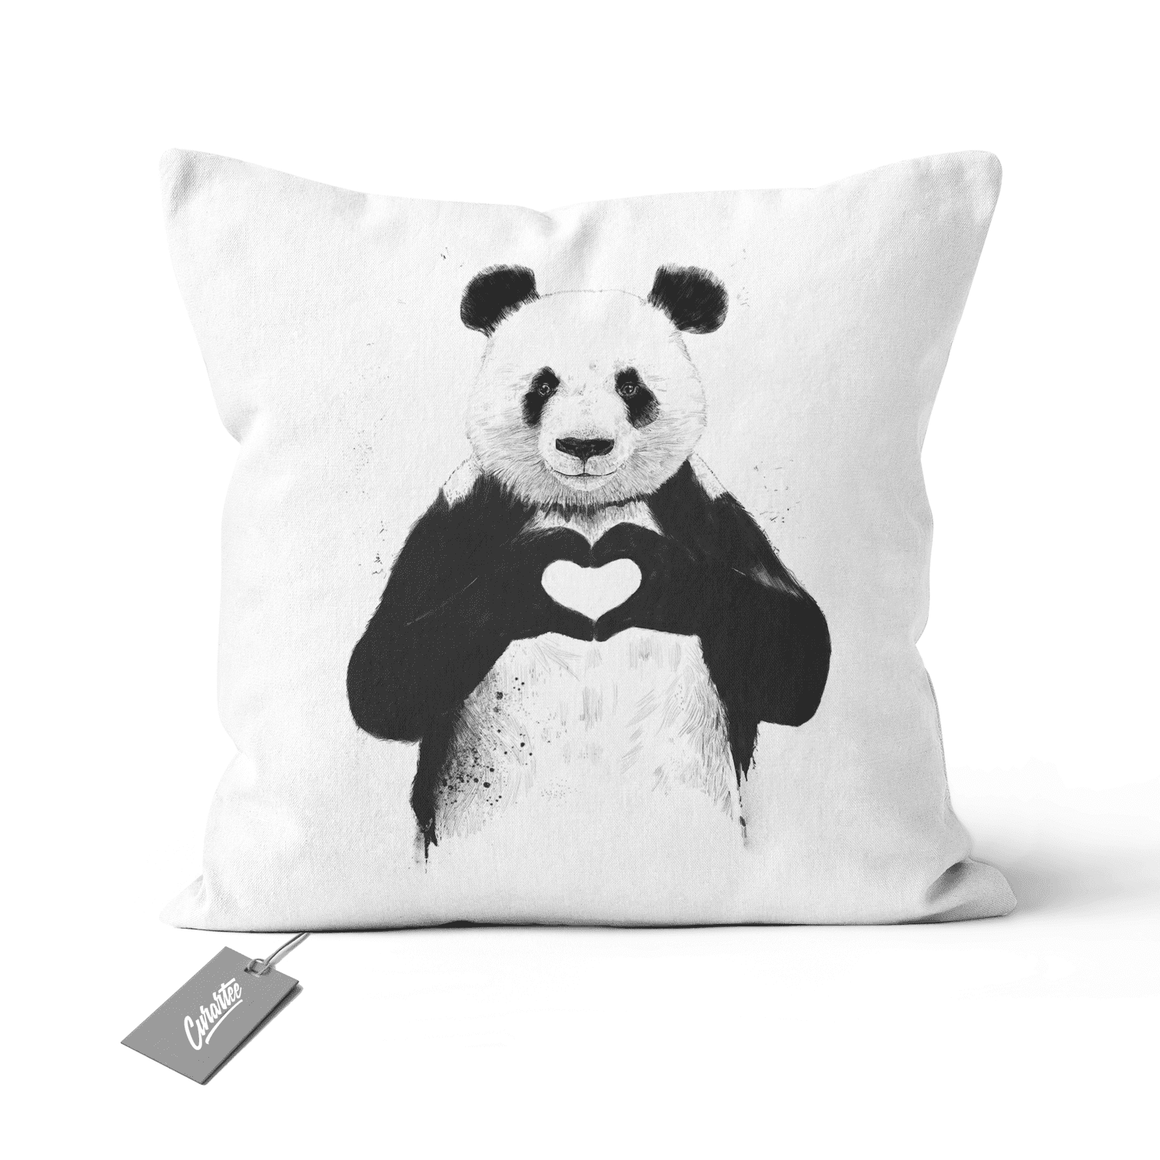 All You Need is Love Cushion - Premium Artwear Curartee